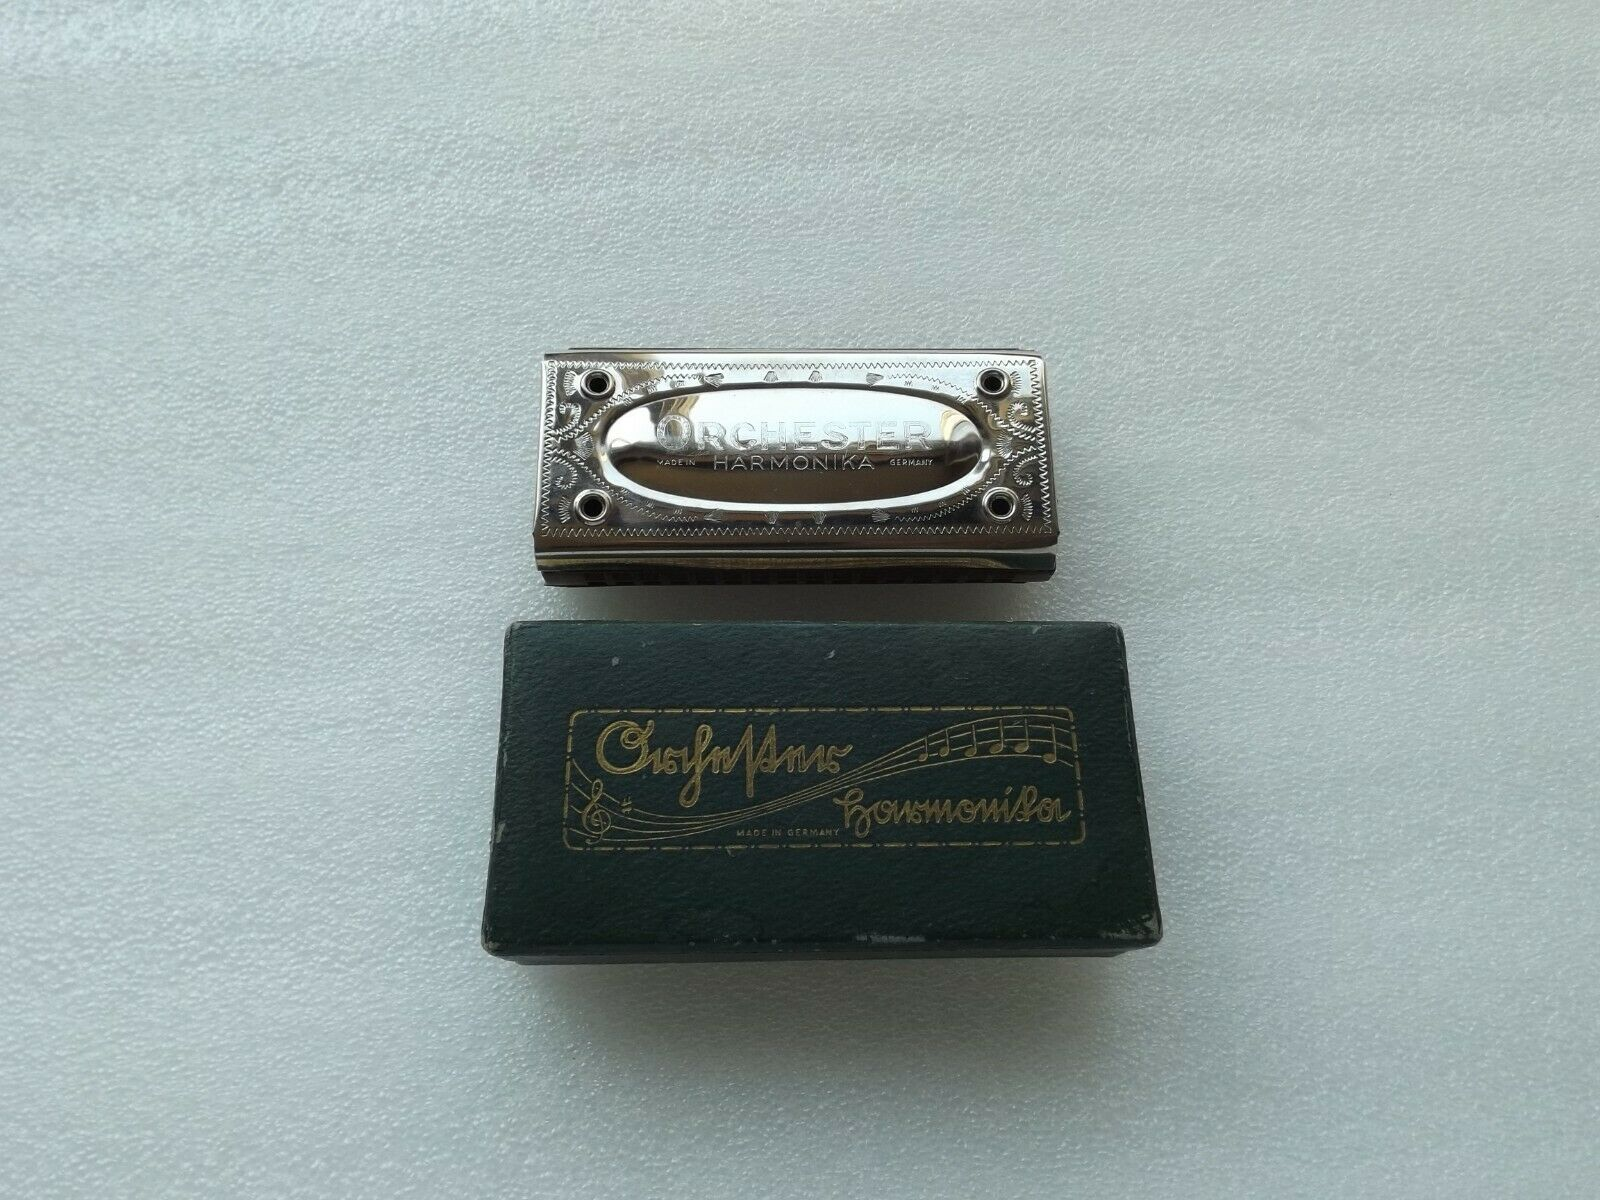 Vintage Germany Harmonica ORCHESTER C G  Double Sided Harmonica w  Original Box